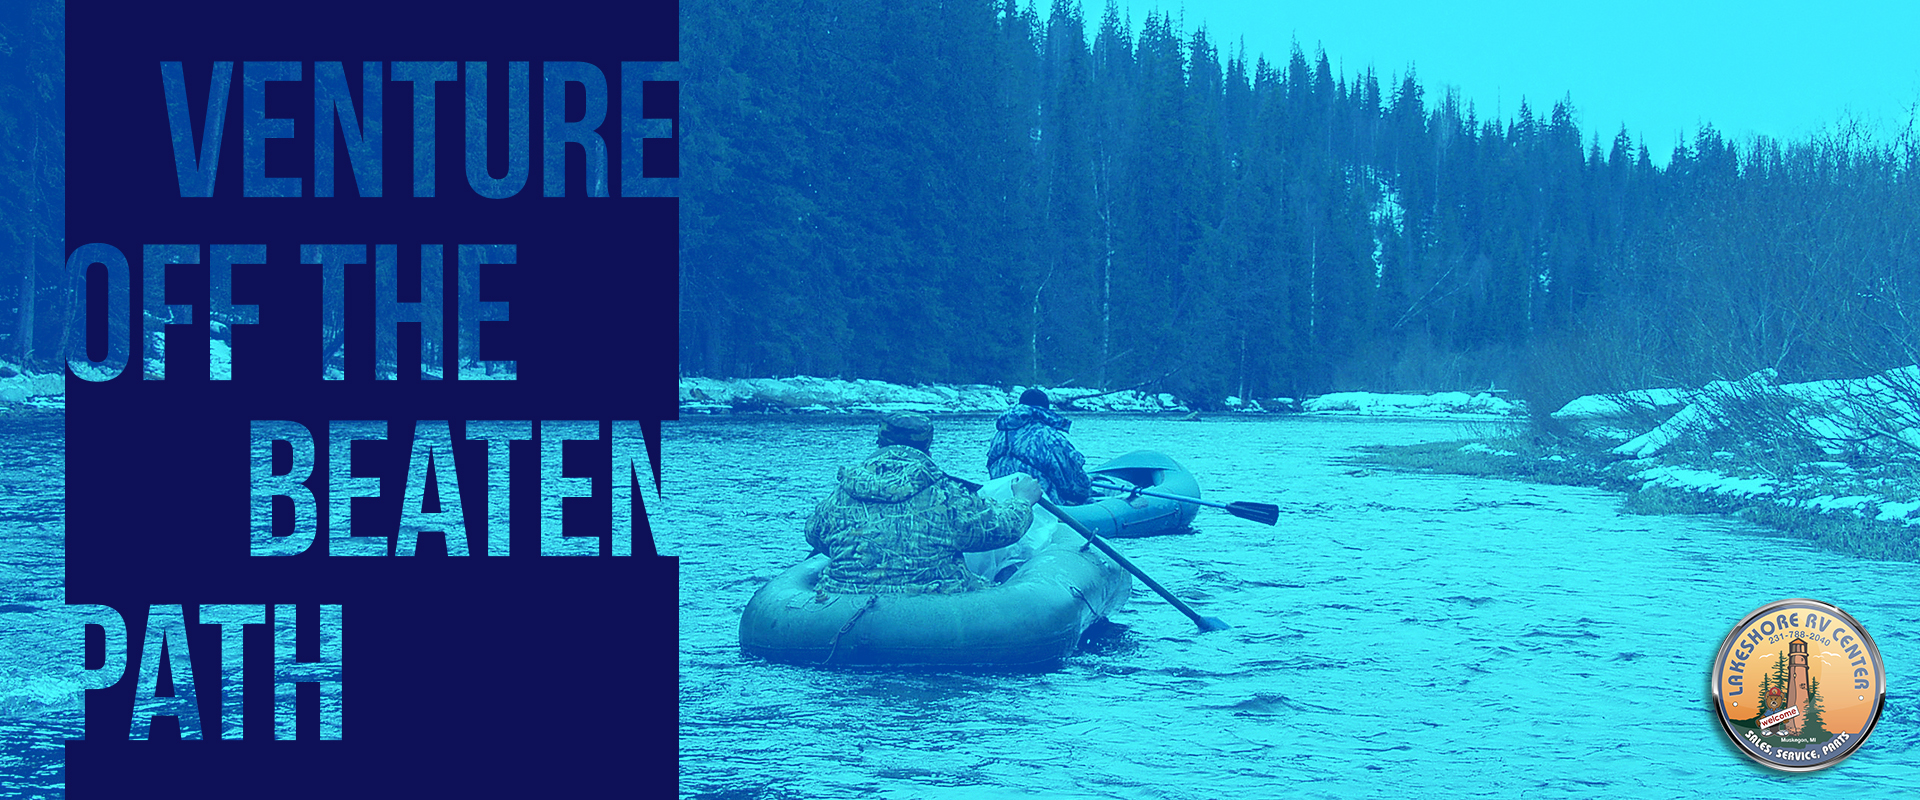 Winter water rafting in Michigan. Venture off the beaten path.